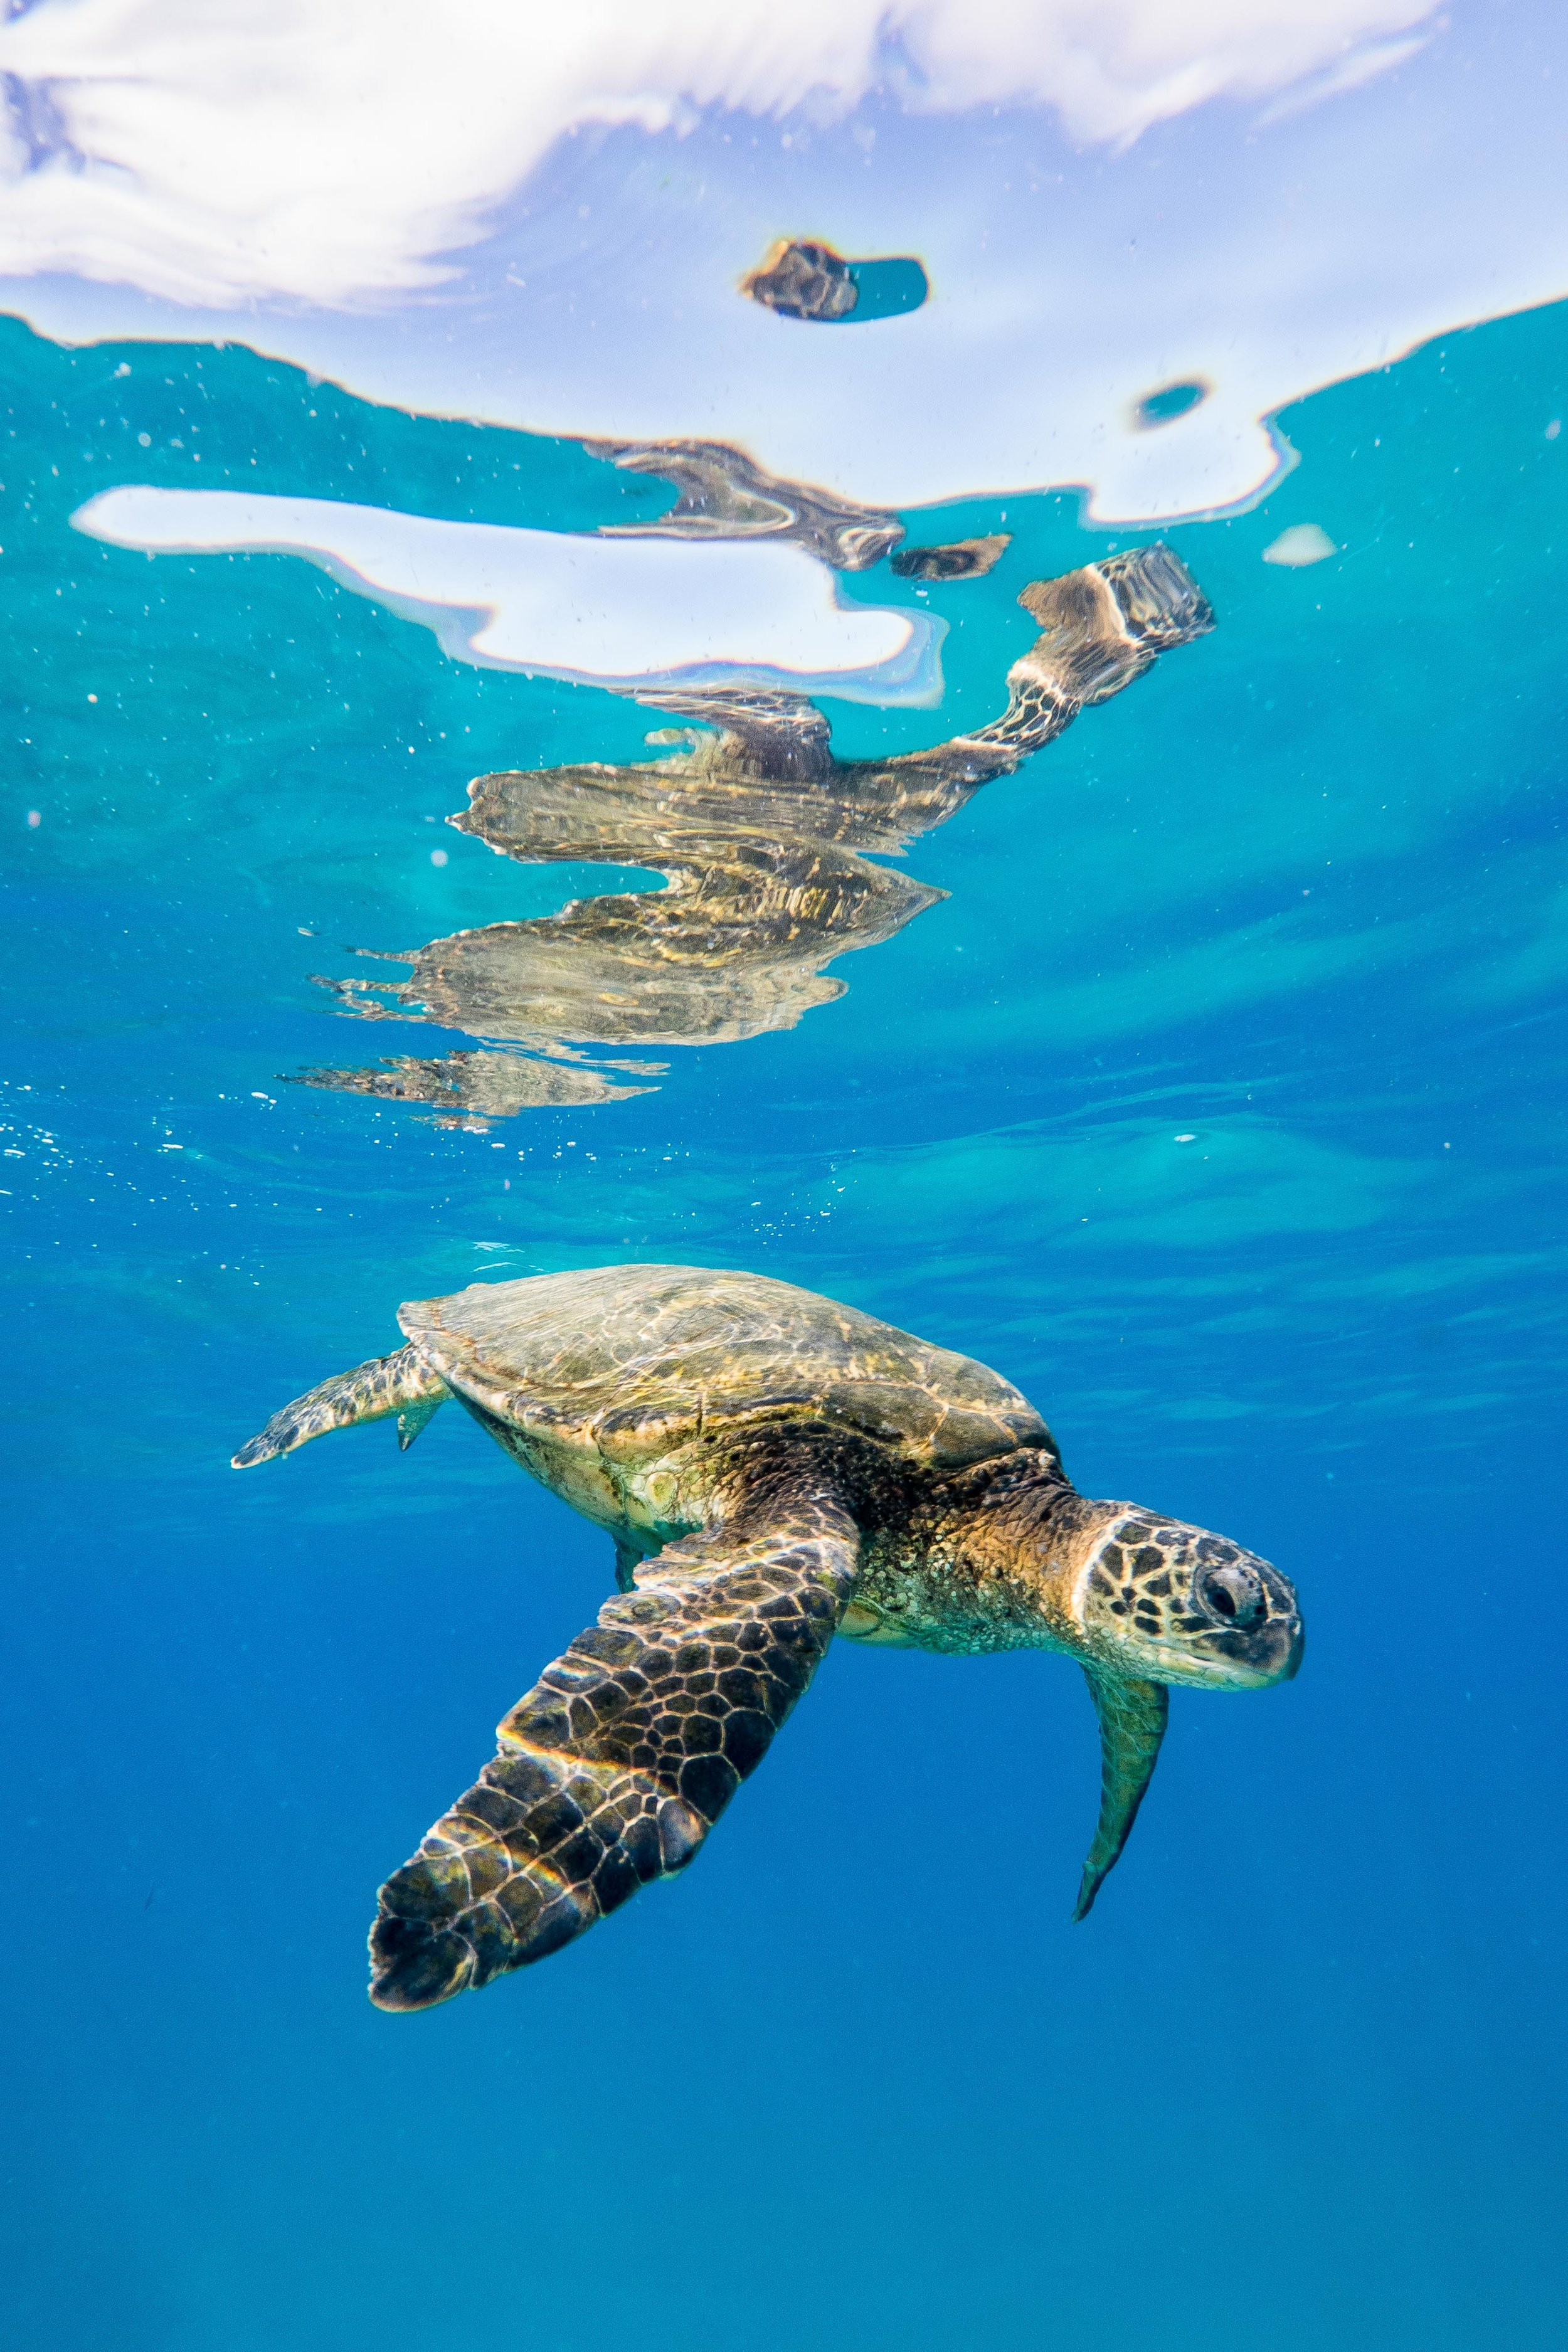 A green sea turtle floats just below the surface in Maui. Minutes before I took this photograph, I witnessed this turtle take a bite of plastic out of passing debris.